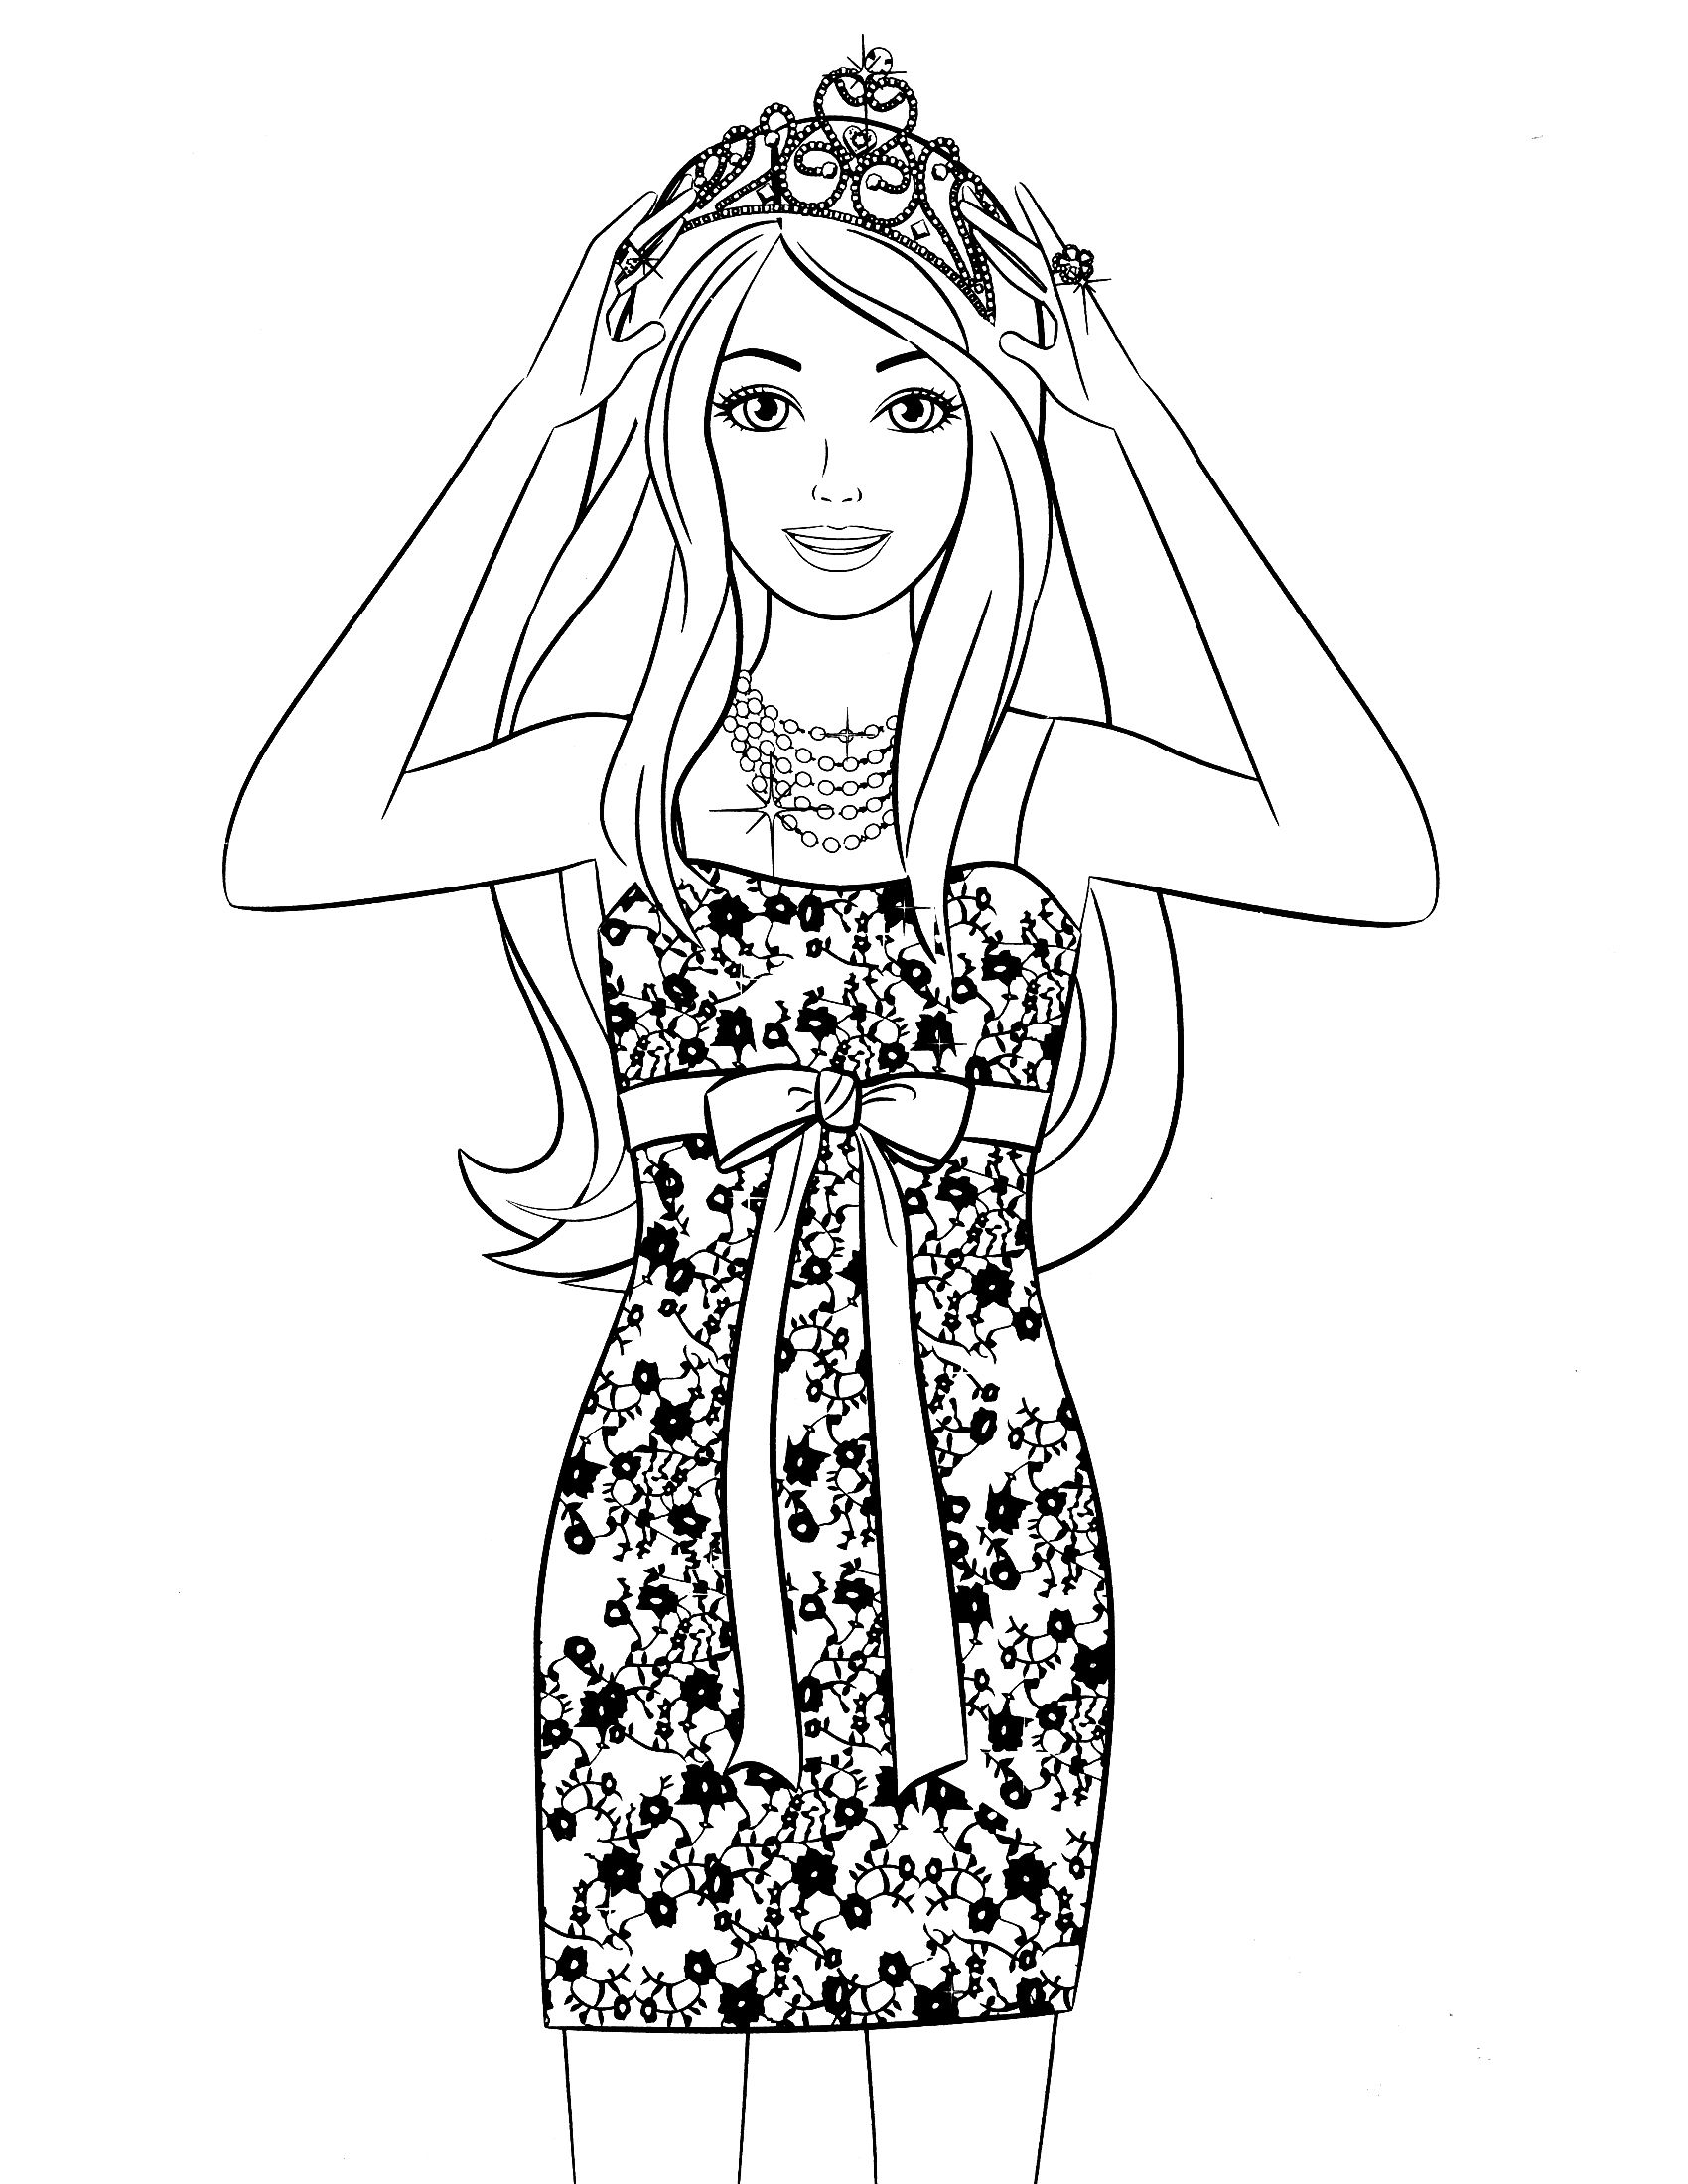 Barbie Coloring Pages For Girls Barbie Coloring Page 89 Barbie